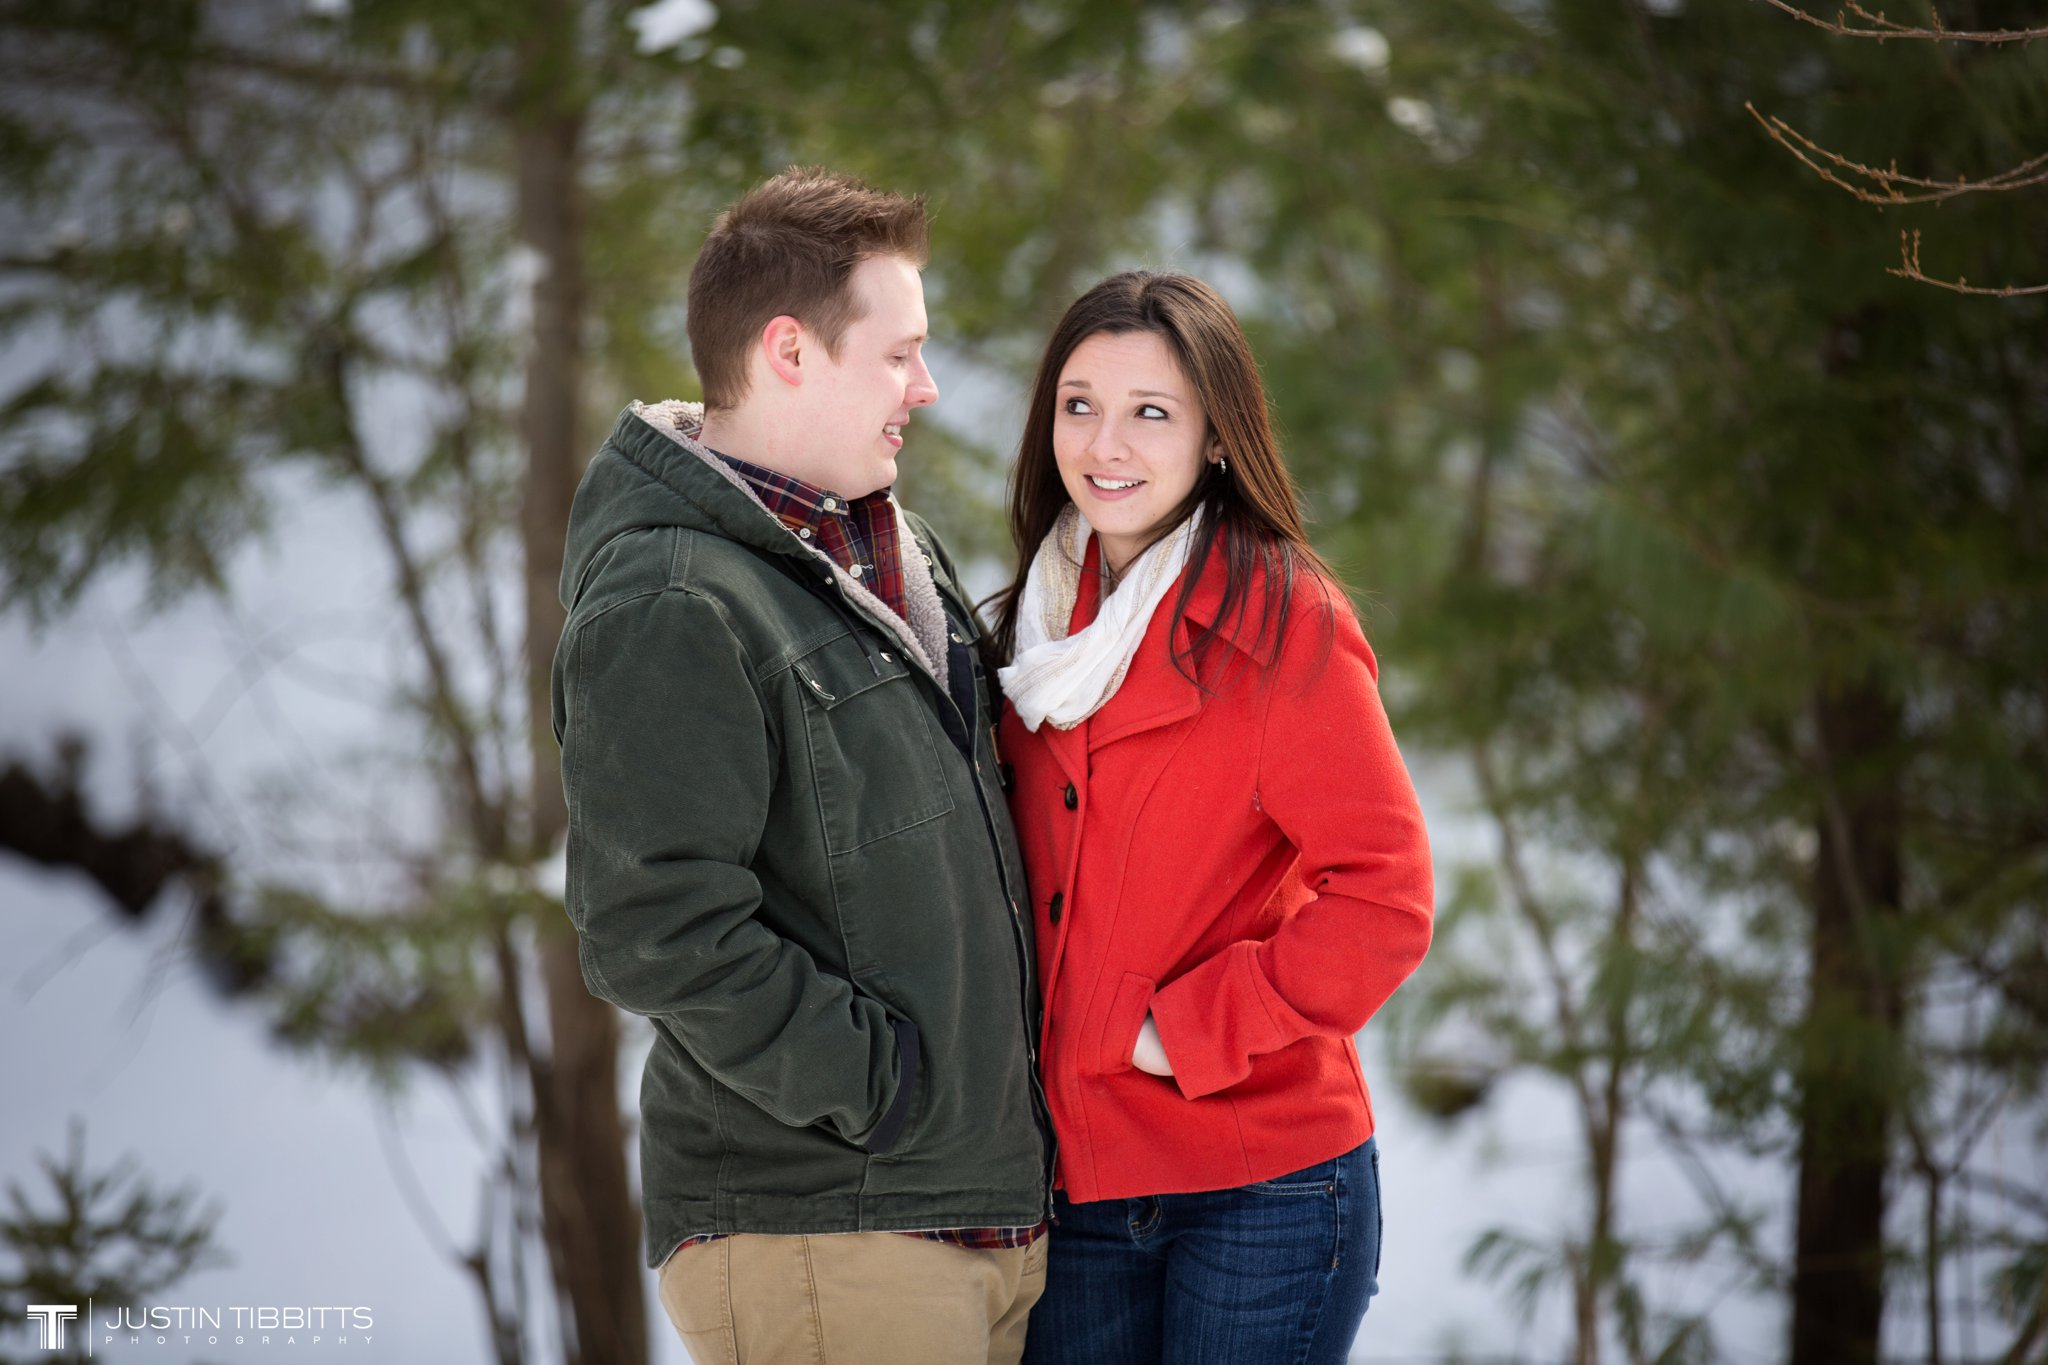 Justin Tibbitts Photography Brittany and Rob's Averill Park New York Engagement Photo shoot_0005